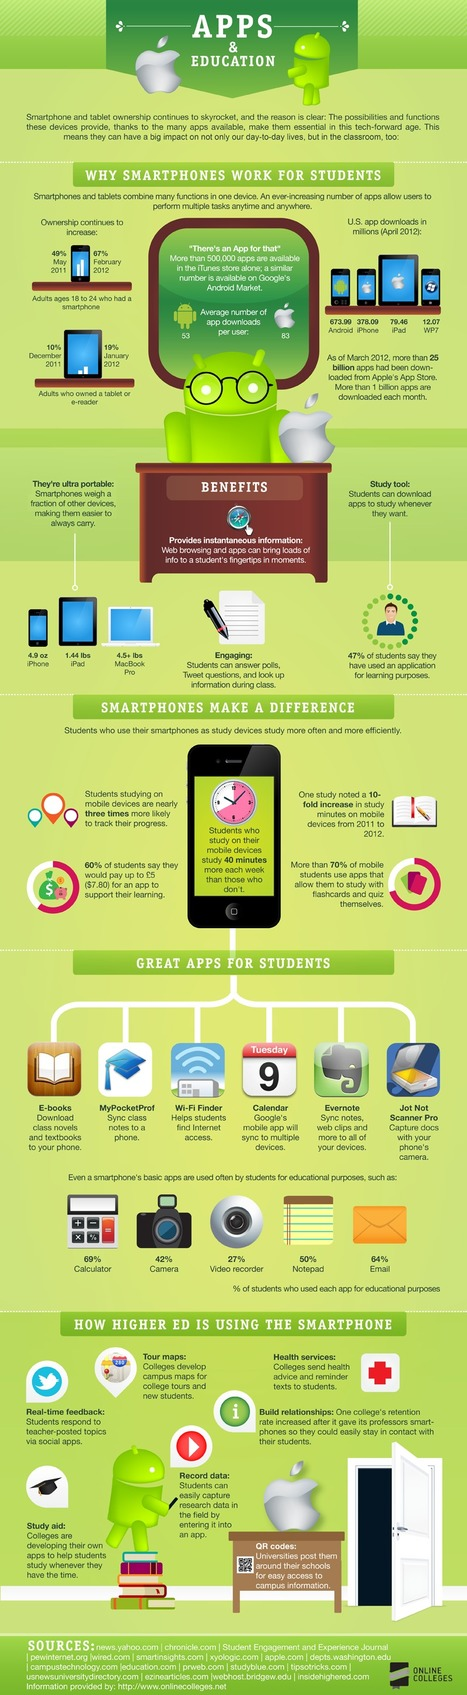 Trends | Infographic: Apps and Education | Mobile Learning in Higher Education | Scoop.it